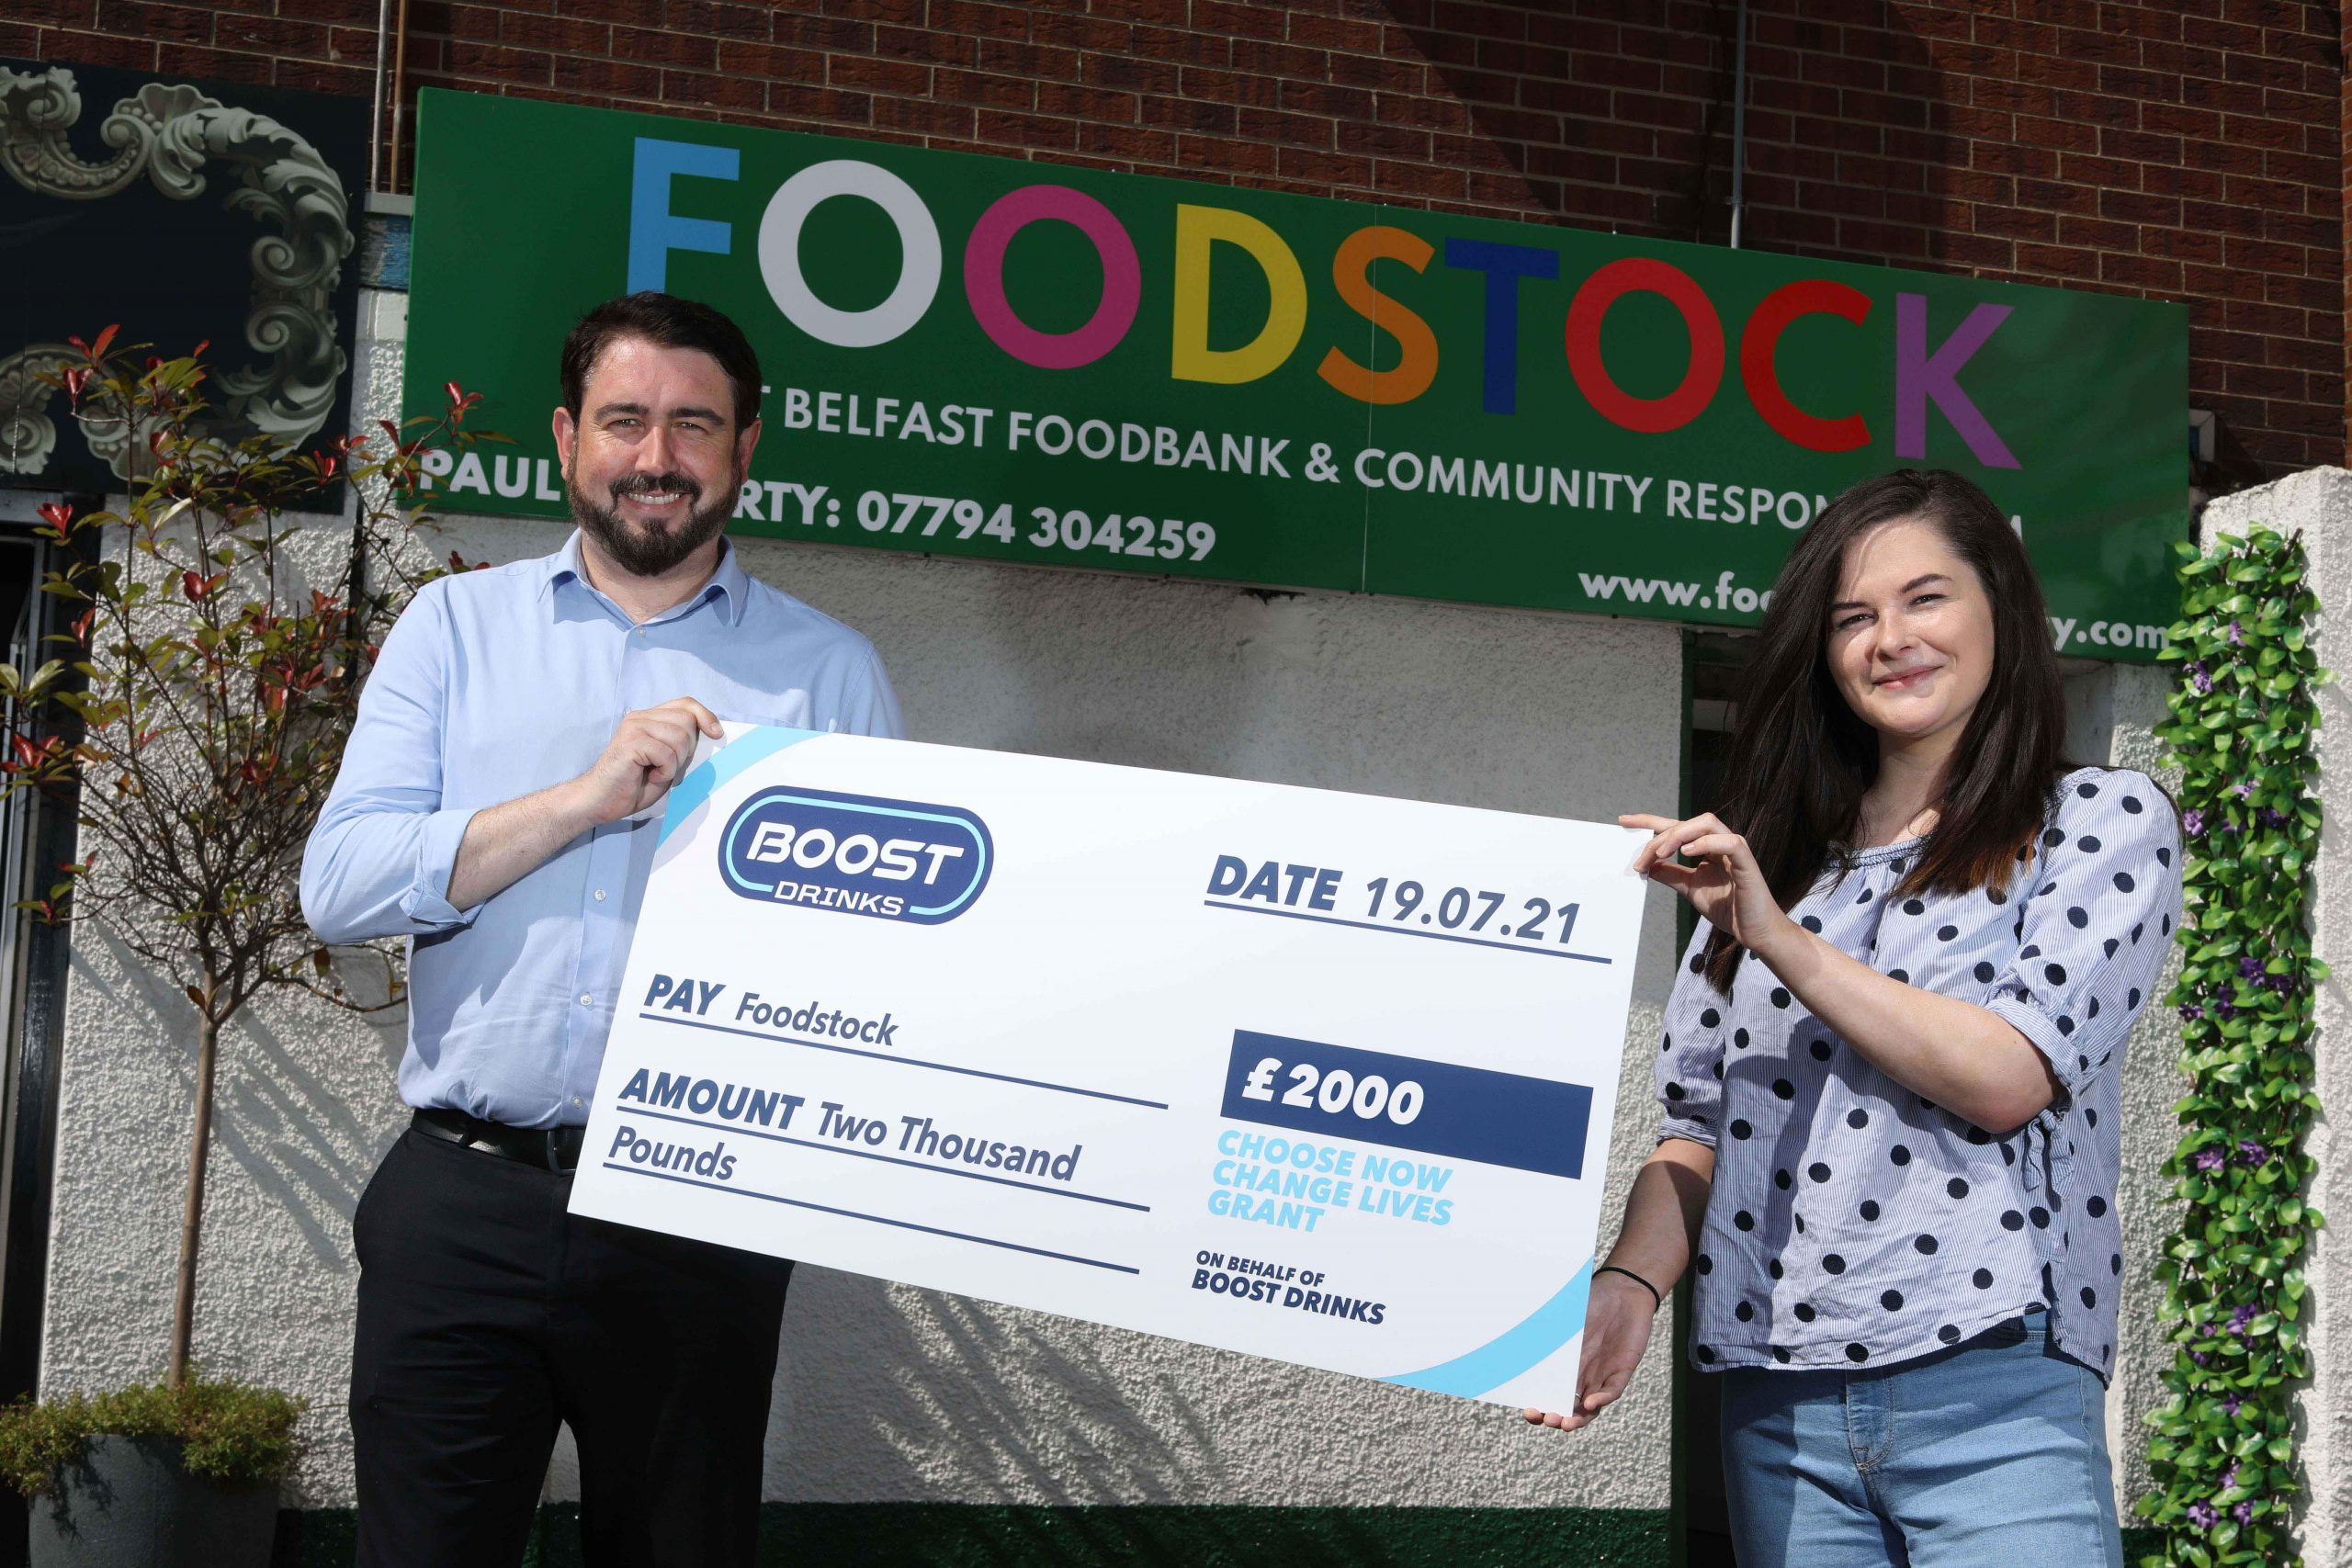 Boost Drinks, the owner of Northern Ireland's best-selling soft drink within the local independent convenience channel*, has announced that Foodstock in west Belfast, Dramability in Downpatrick and Ballykelly Men's Shed, are the first community groups to receive a share of its Choose Now, Change Lives, £10k fund. Pictured receiving their cheque for £2000 is Paul Doherty and Orlagh Craig from Foodstock. The second round of the grant awards is currently underway, and the third burst will take place later this year, allowing six more incredible community groups in Northern Ireland to receive a donation from the Boost Drinks 'Choose Now, Change Lives' fund. There's still time to nominate a group or project that needs some help, please fill out a nomination form at www.boostdrinks.com/changelivesni. * Source: IRI Marketplace Data, Symbols & Independents, Unit Sales w/e 27.12.20